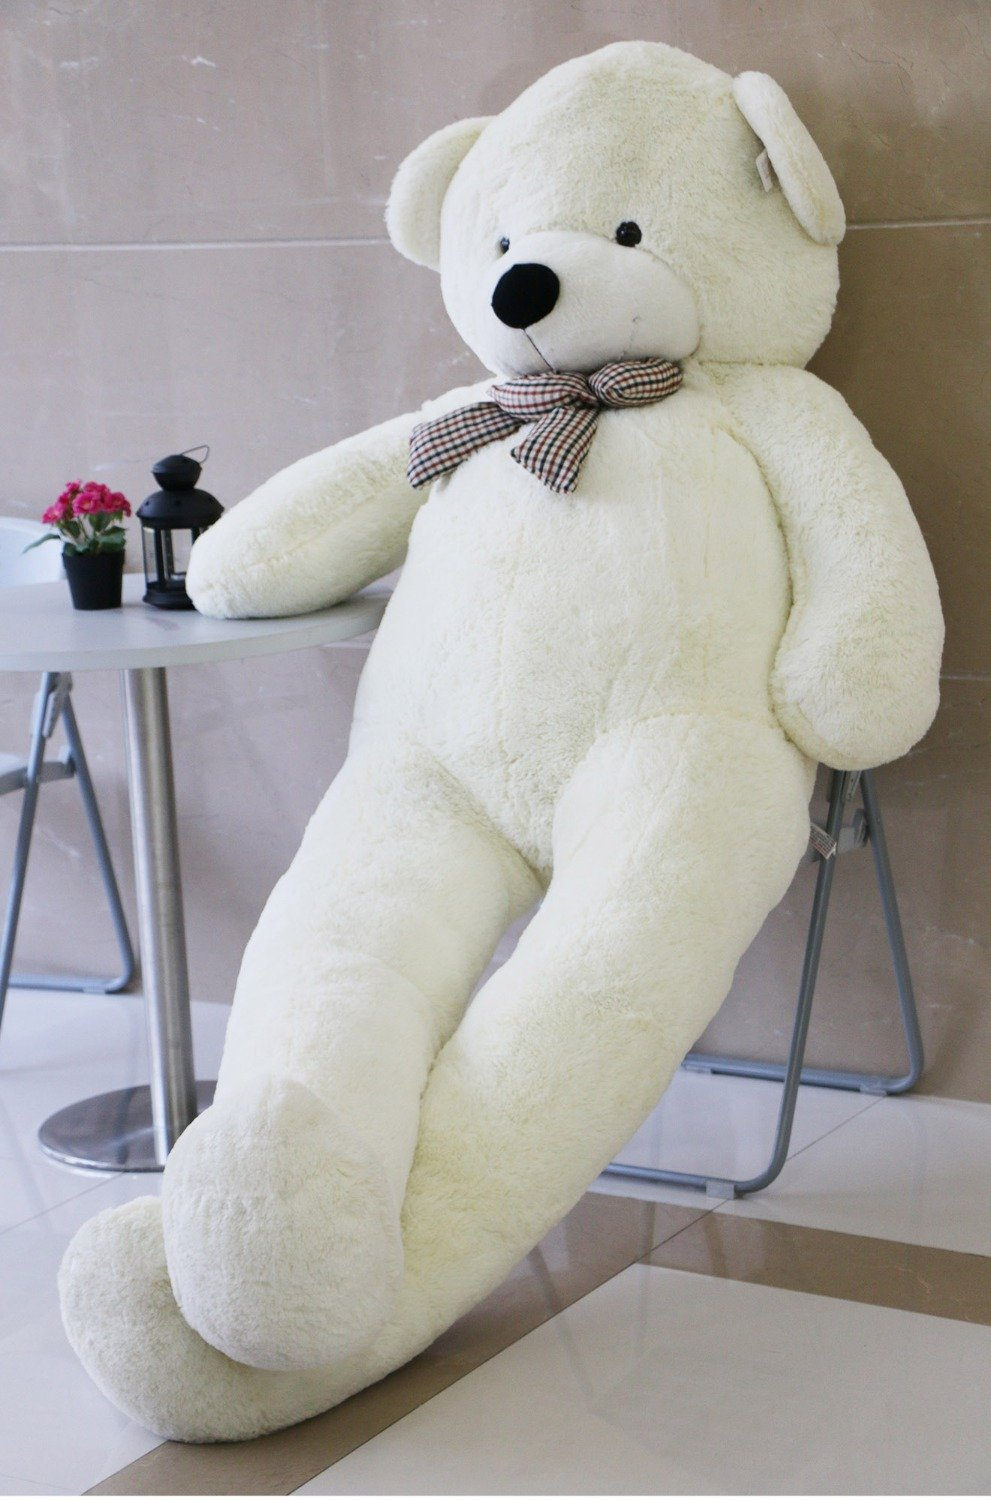 VILAVI 47 White color 120CM Giant Huge Cuddly Stuffed Animals Plush Teddy Bear Toy Doll by Generic